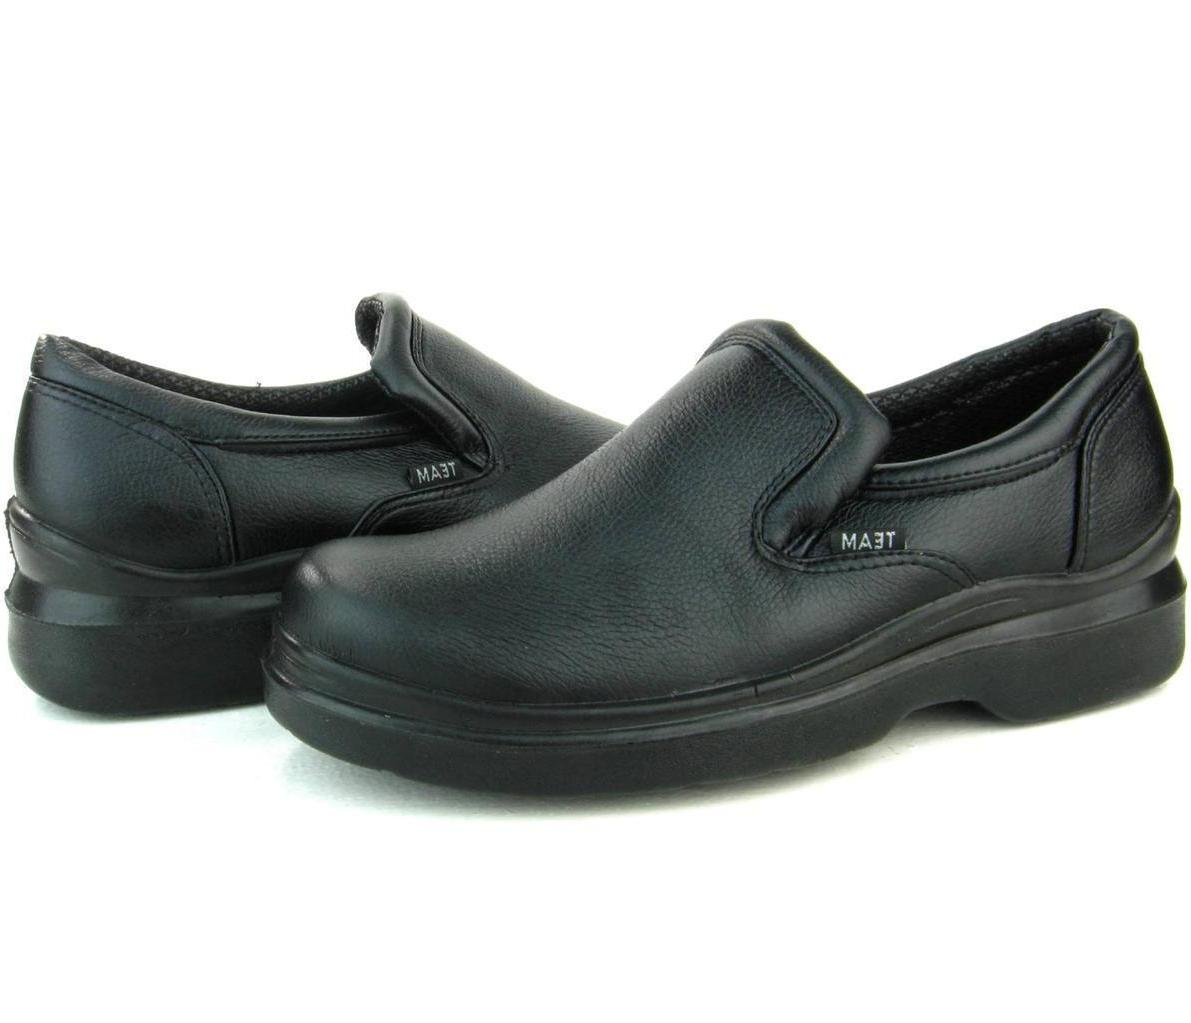 Men's Kitchen Work Slip-On Skid